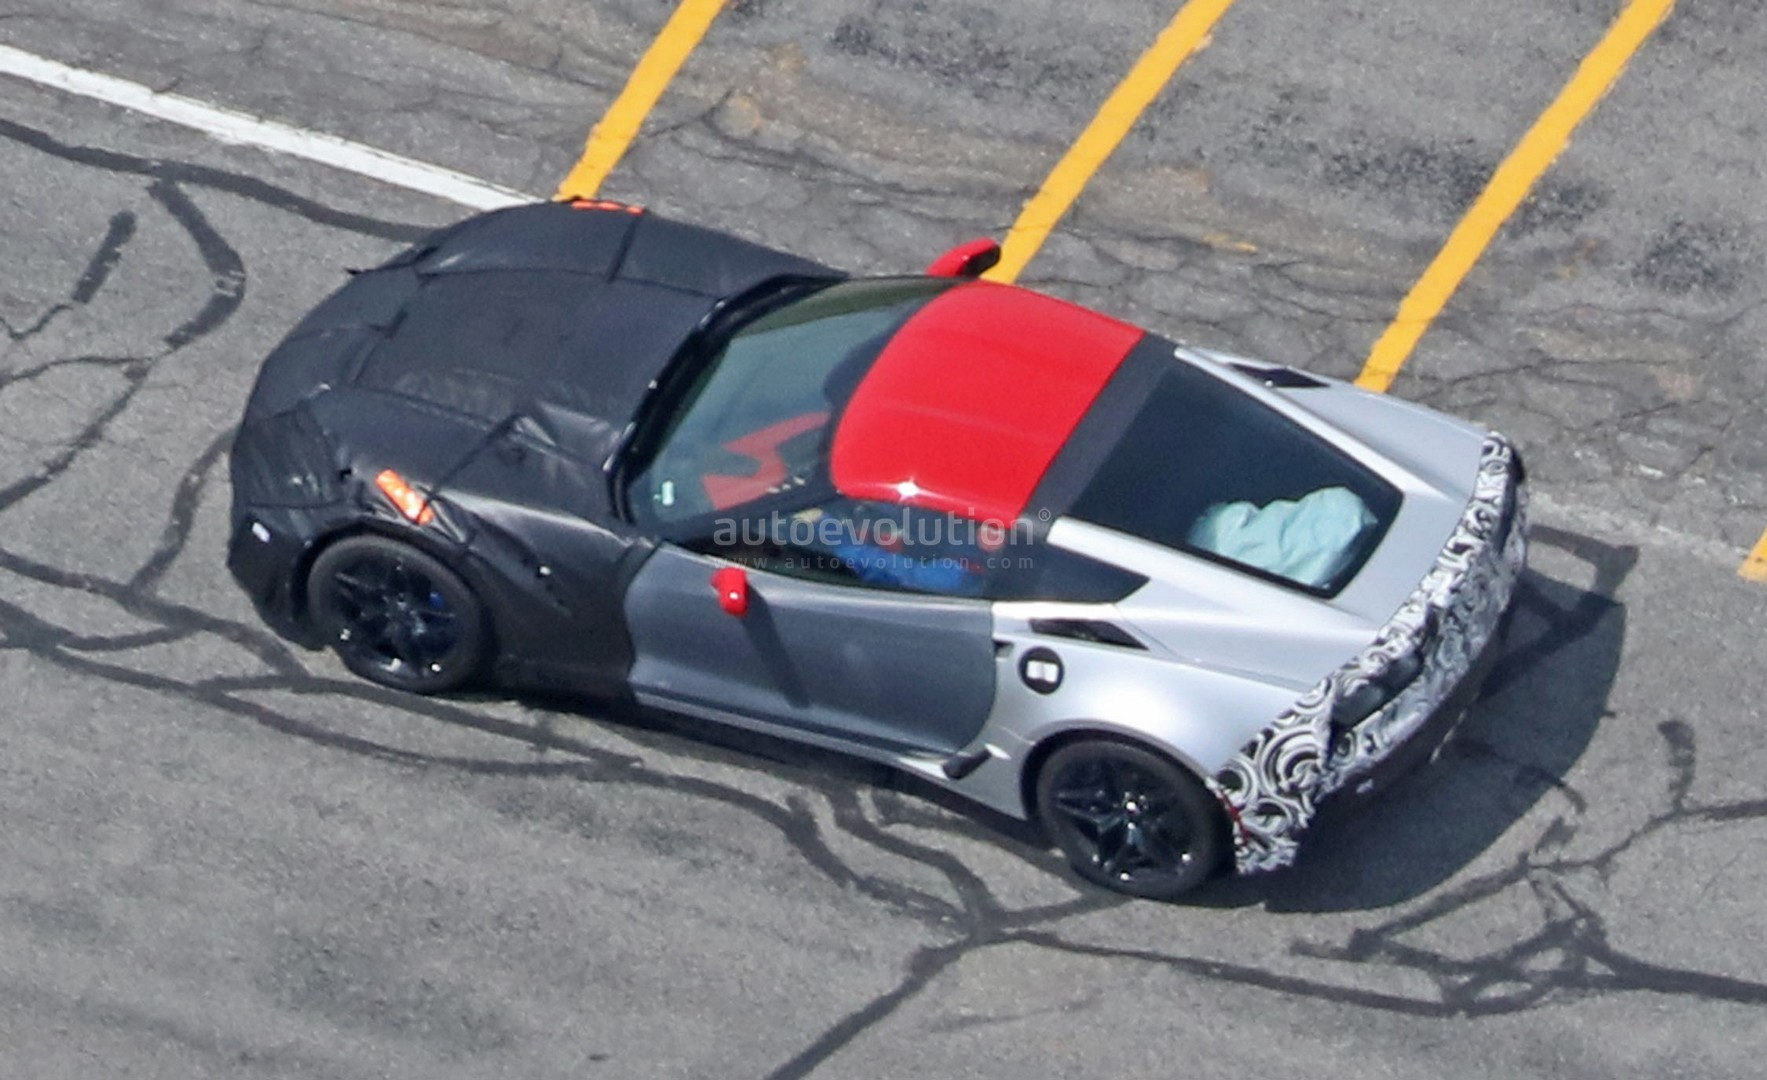 2018 Chevrolet Corvette Zr1 Spied In Coupe Amp Convertible